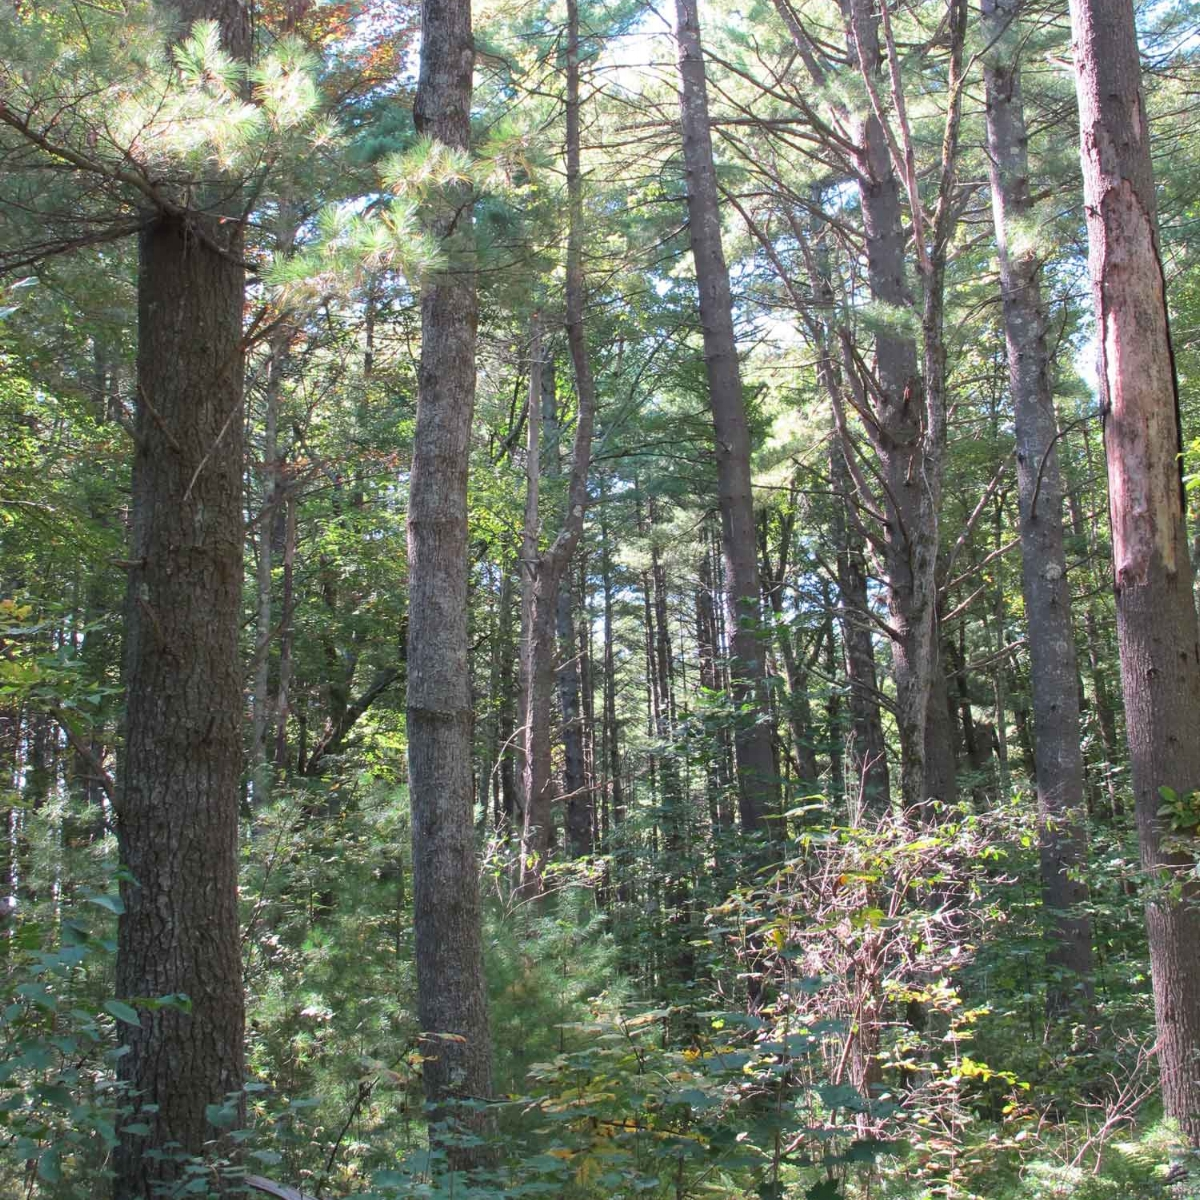 Maturing forest, western Massachusetts